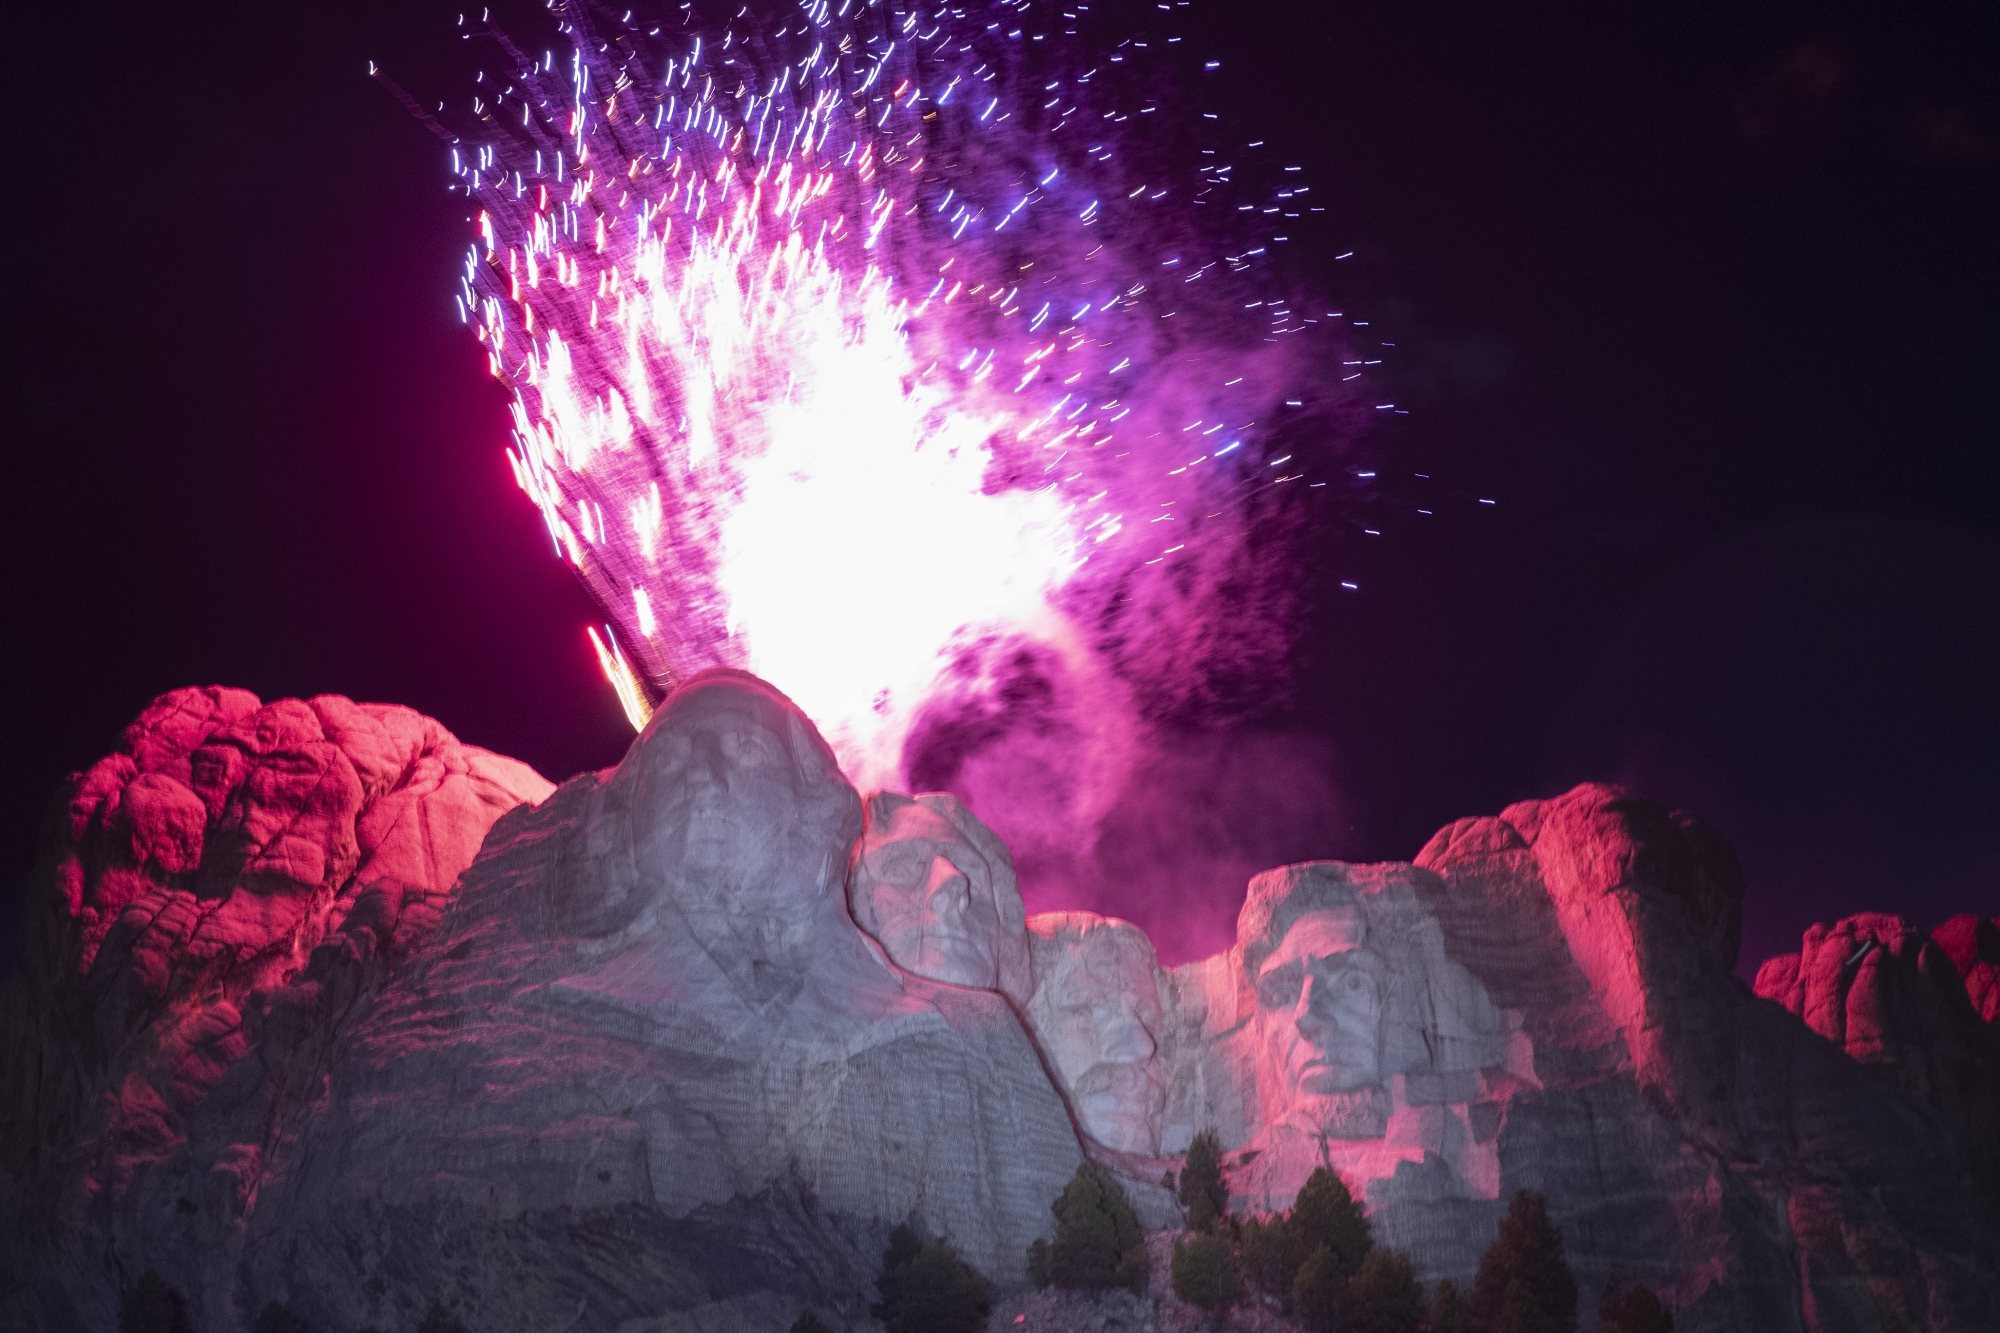 National Park Service staff working Mount Rushmore event...